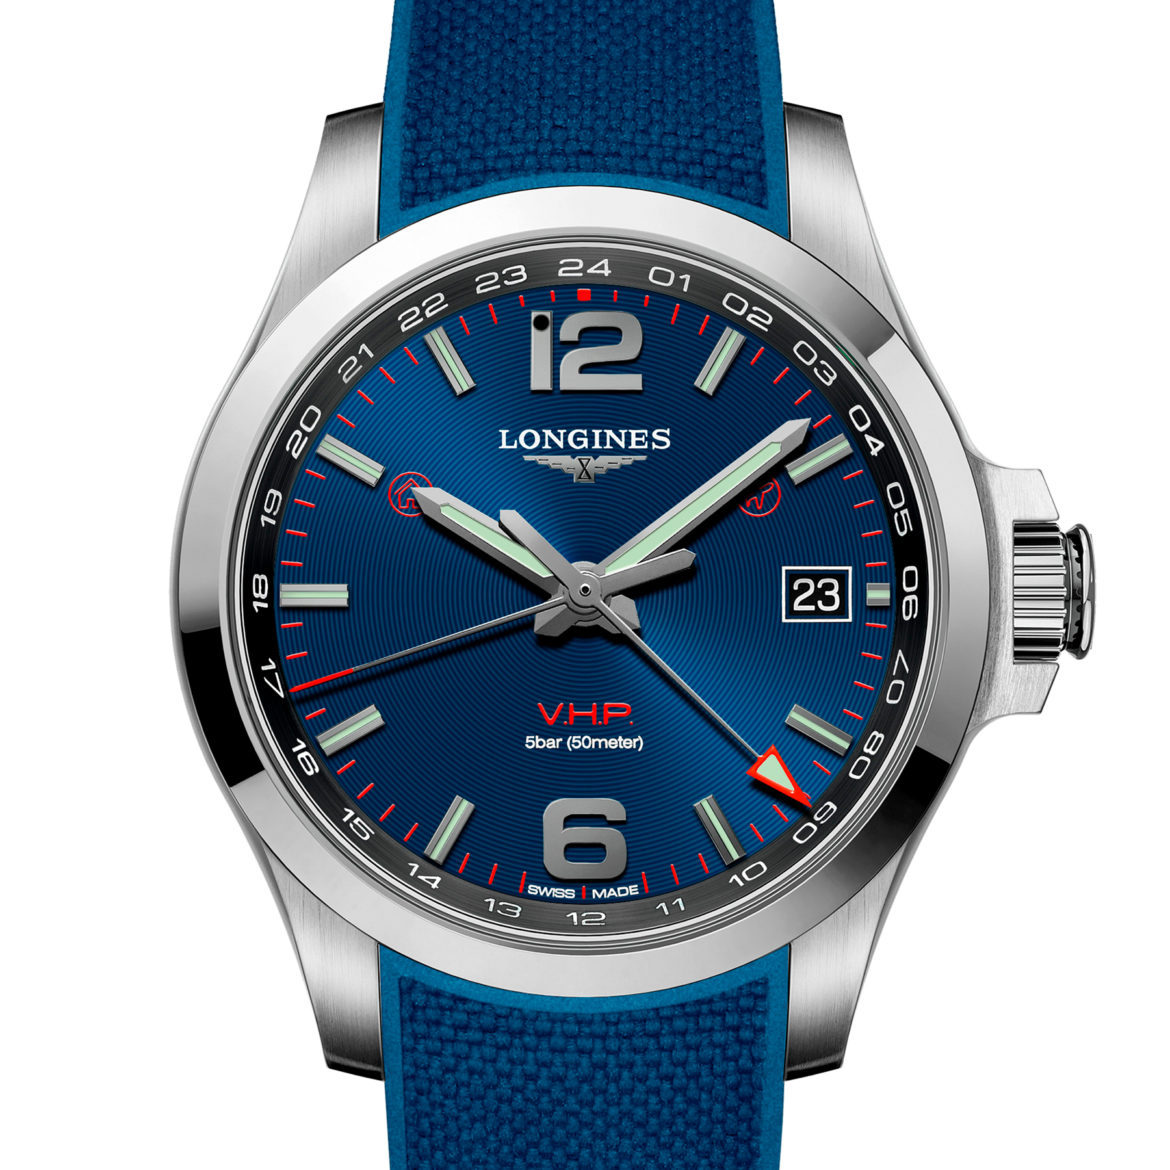 LONGINES</br/>Conquest VHP </br/>L37184969